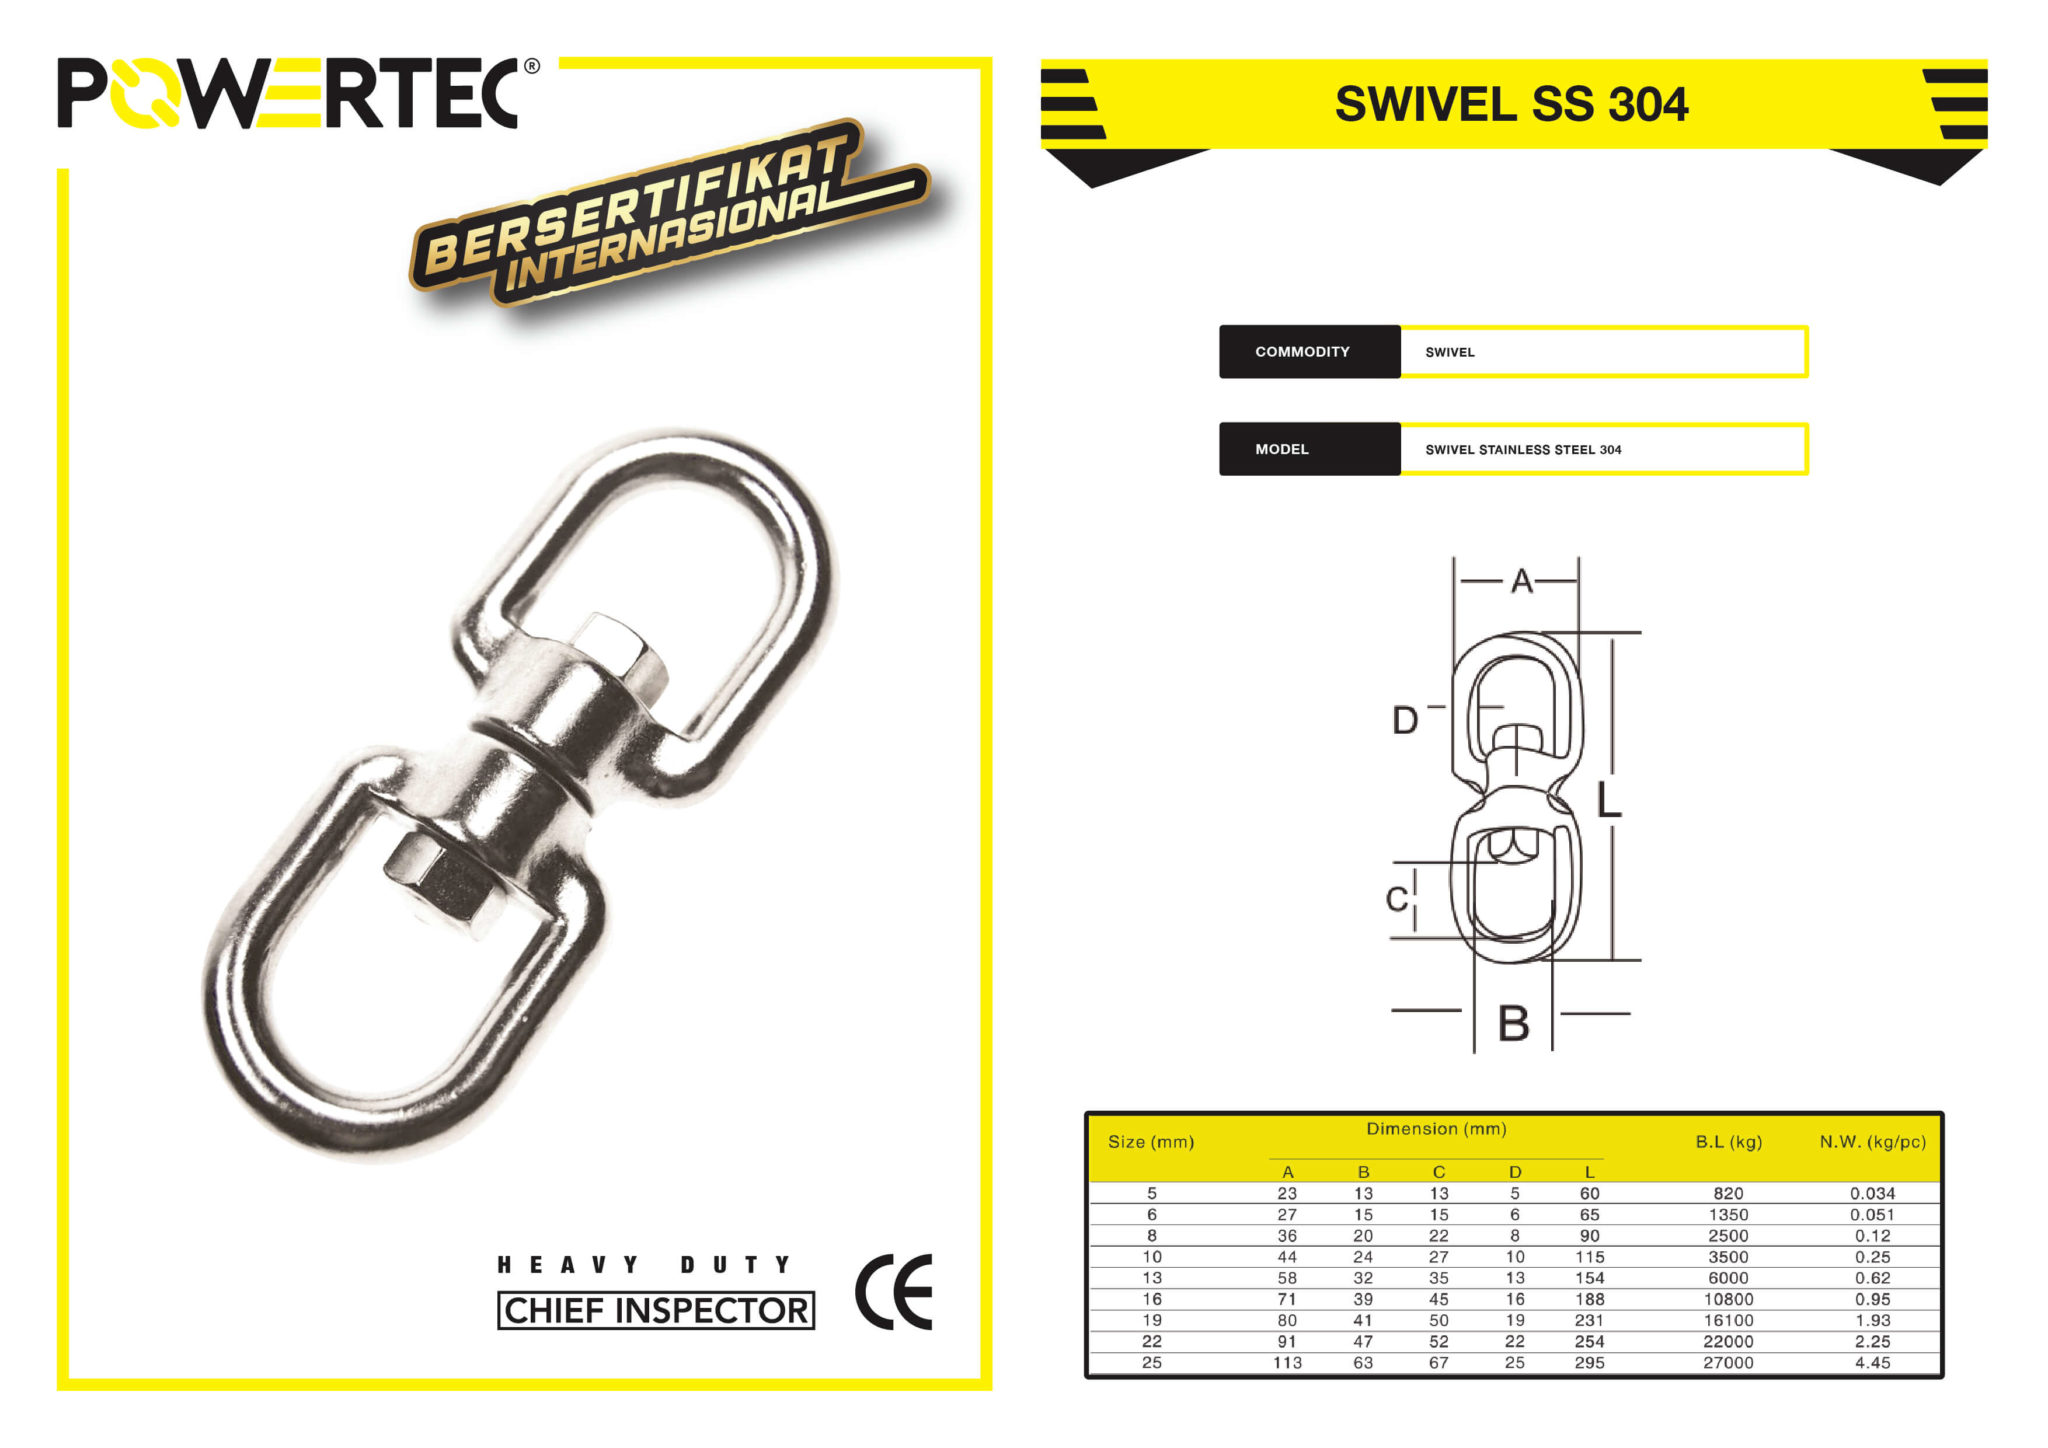 POWERTEC SWIVEL SS 304 BROCHURE